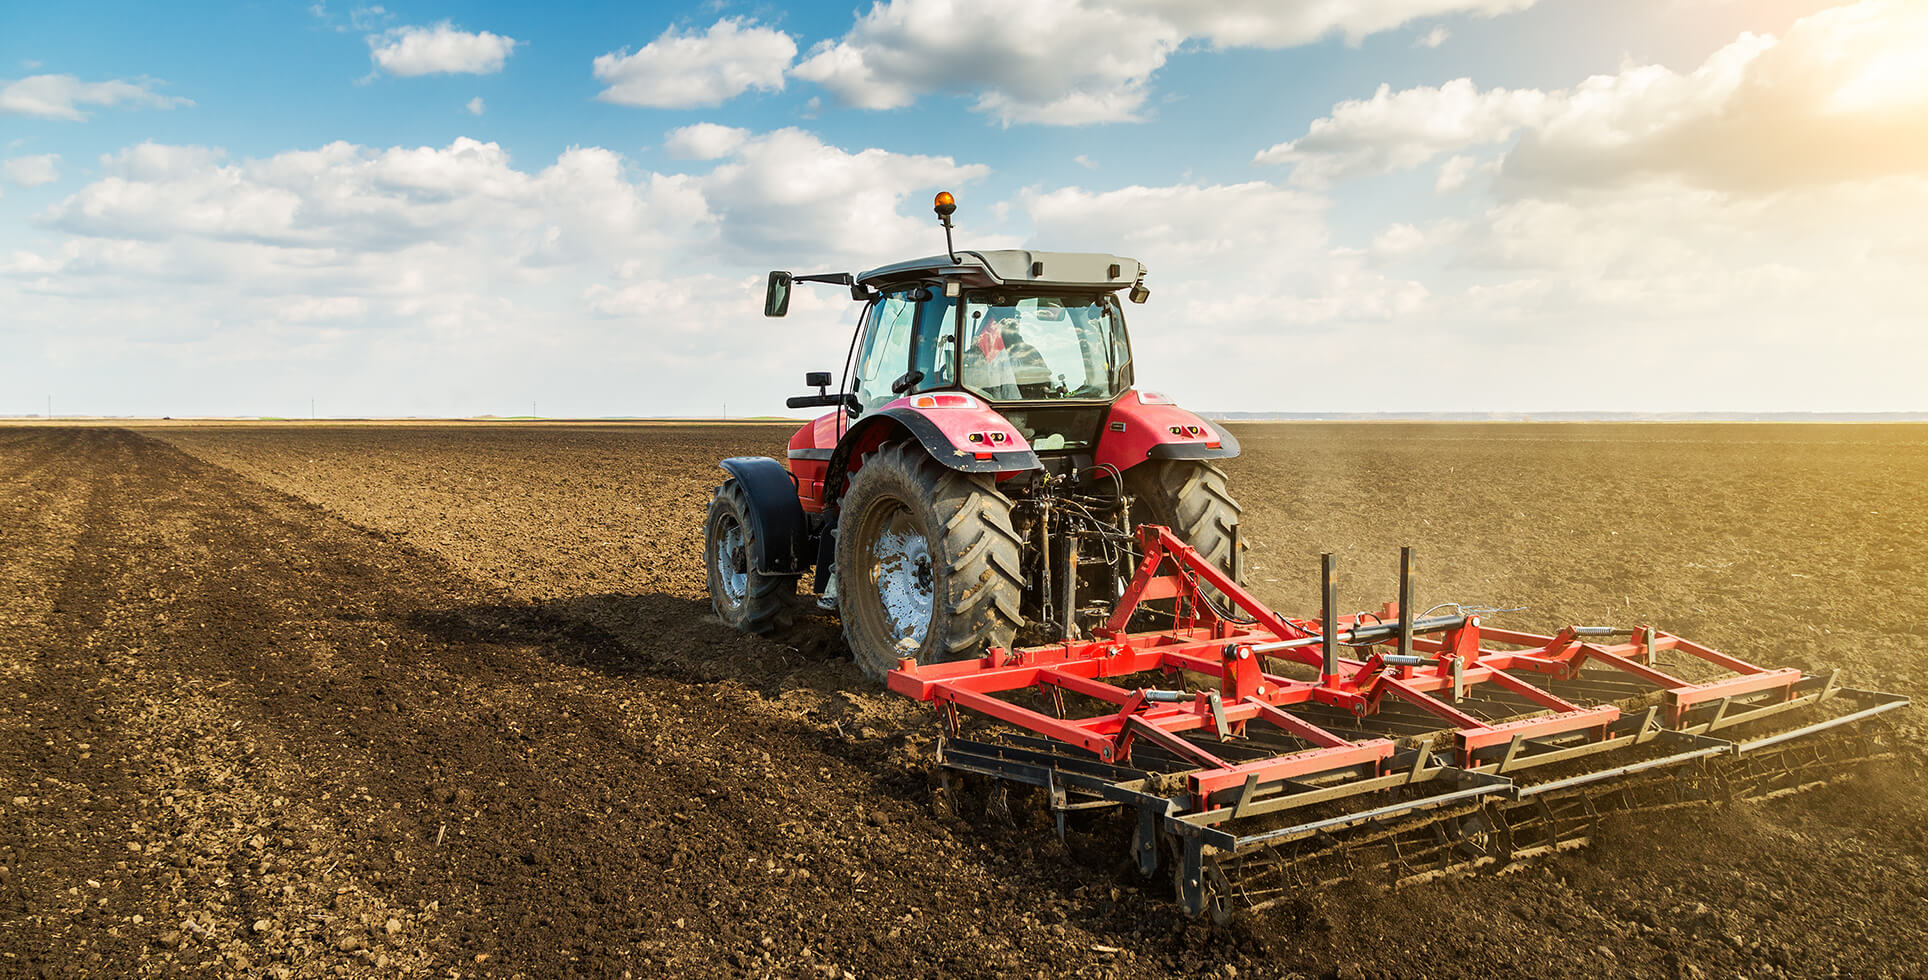 Tractor tunes: Farmers fill the silence during long hours in the ...